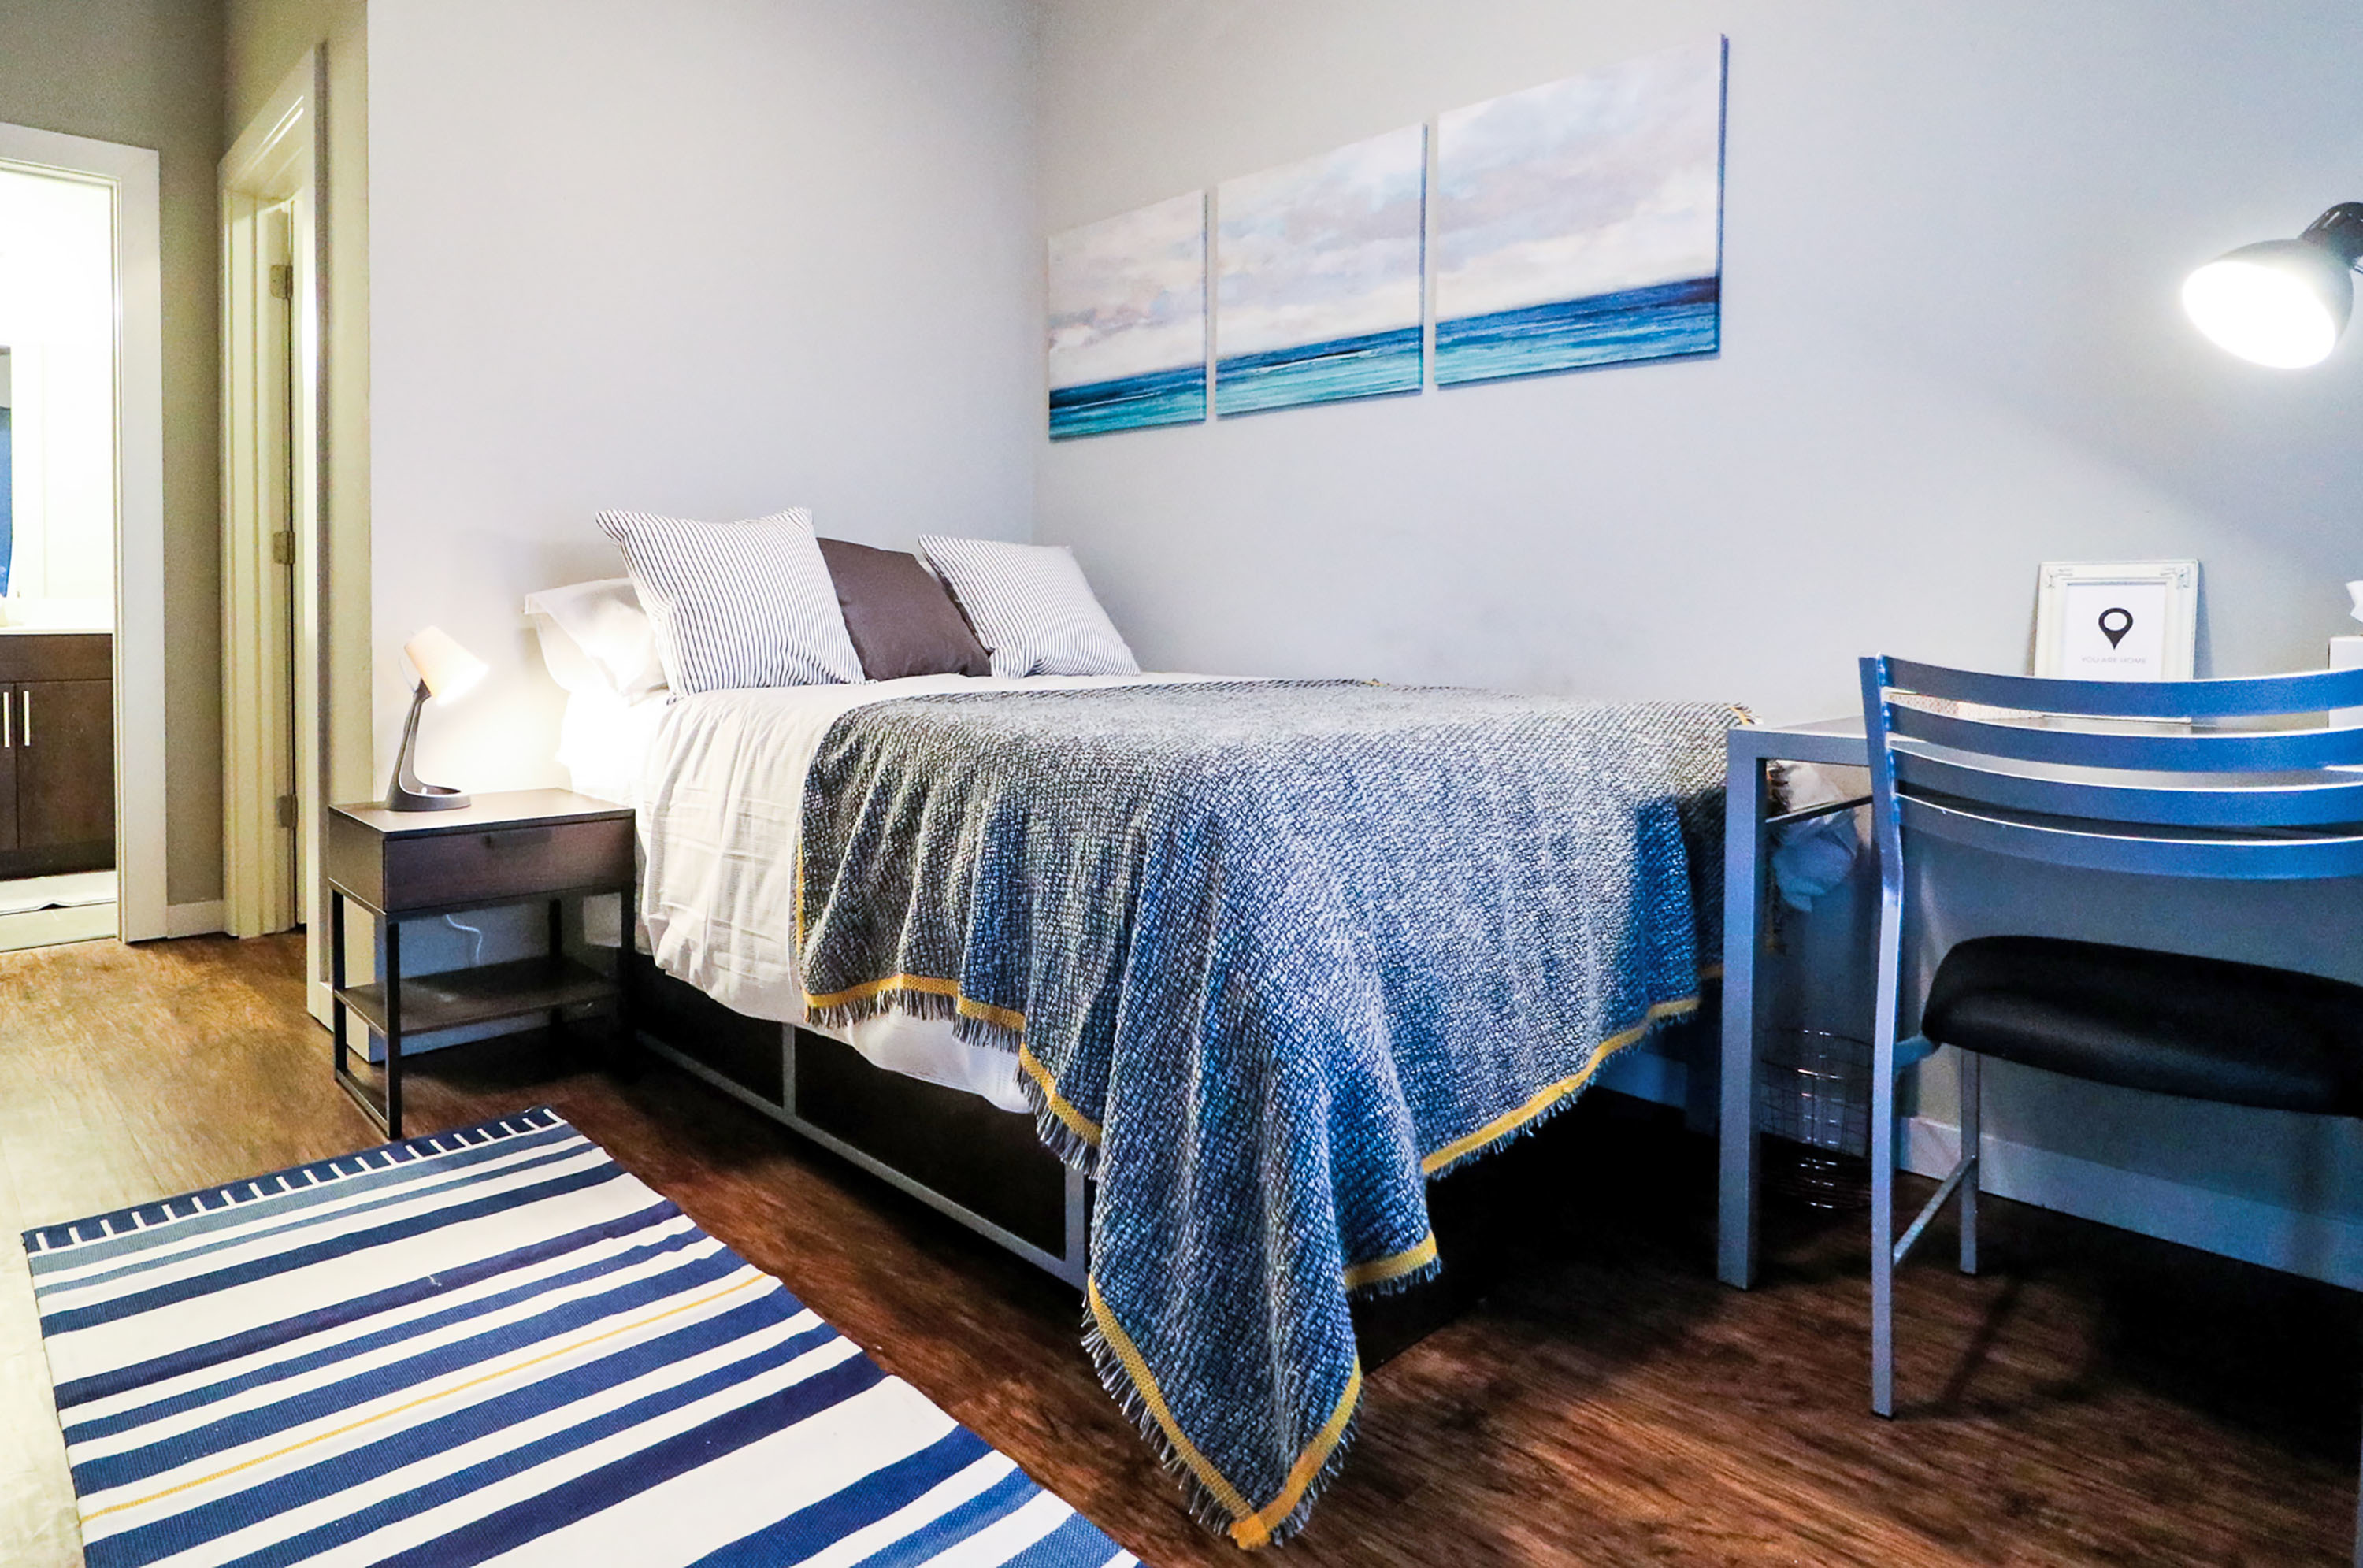 Vie Lofts Joins Initiative to Donate 100 Beds to Traveling Medical Professionals-image